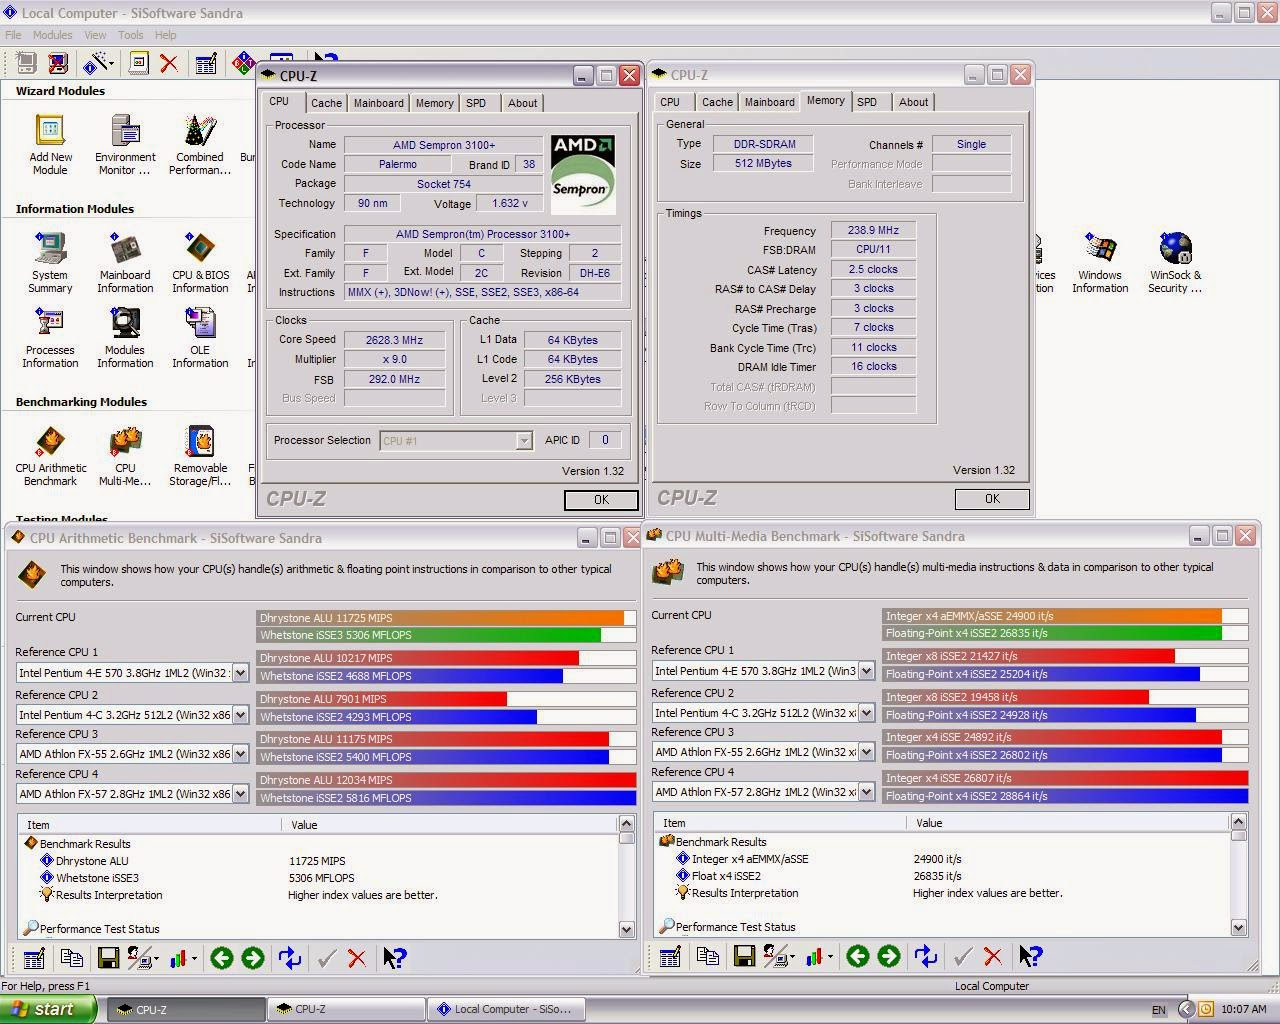 Sisoftware sandra pro business v2012.01.18.10 serials